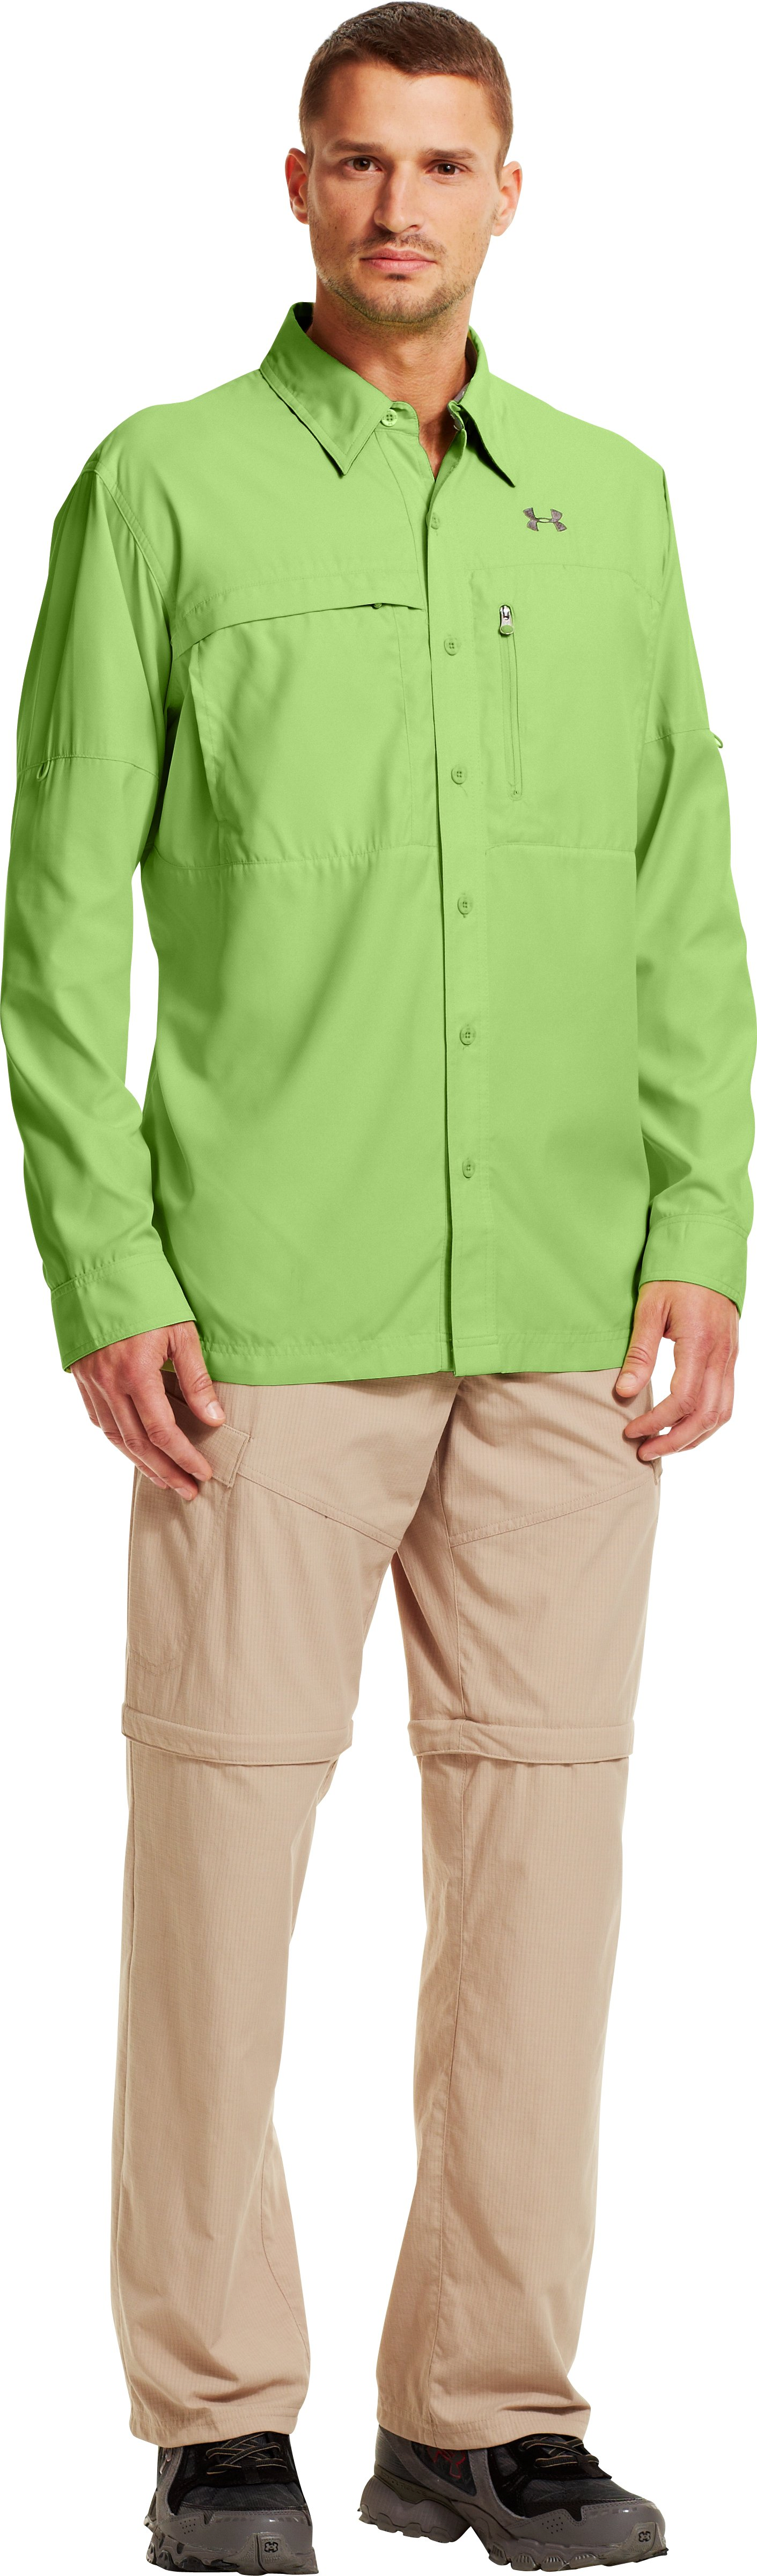 Men's Flats Guide Long Sleeve Shirt, Celery, zoomed image